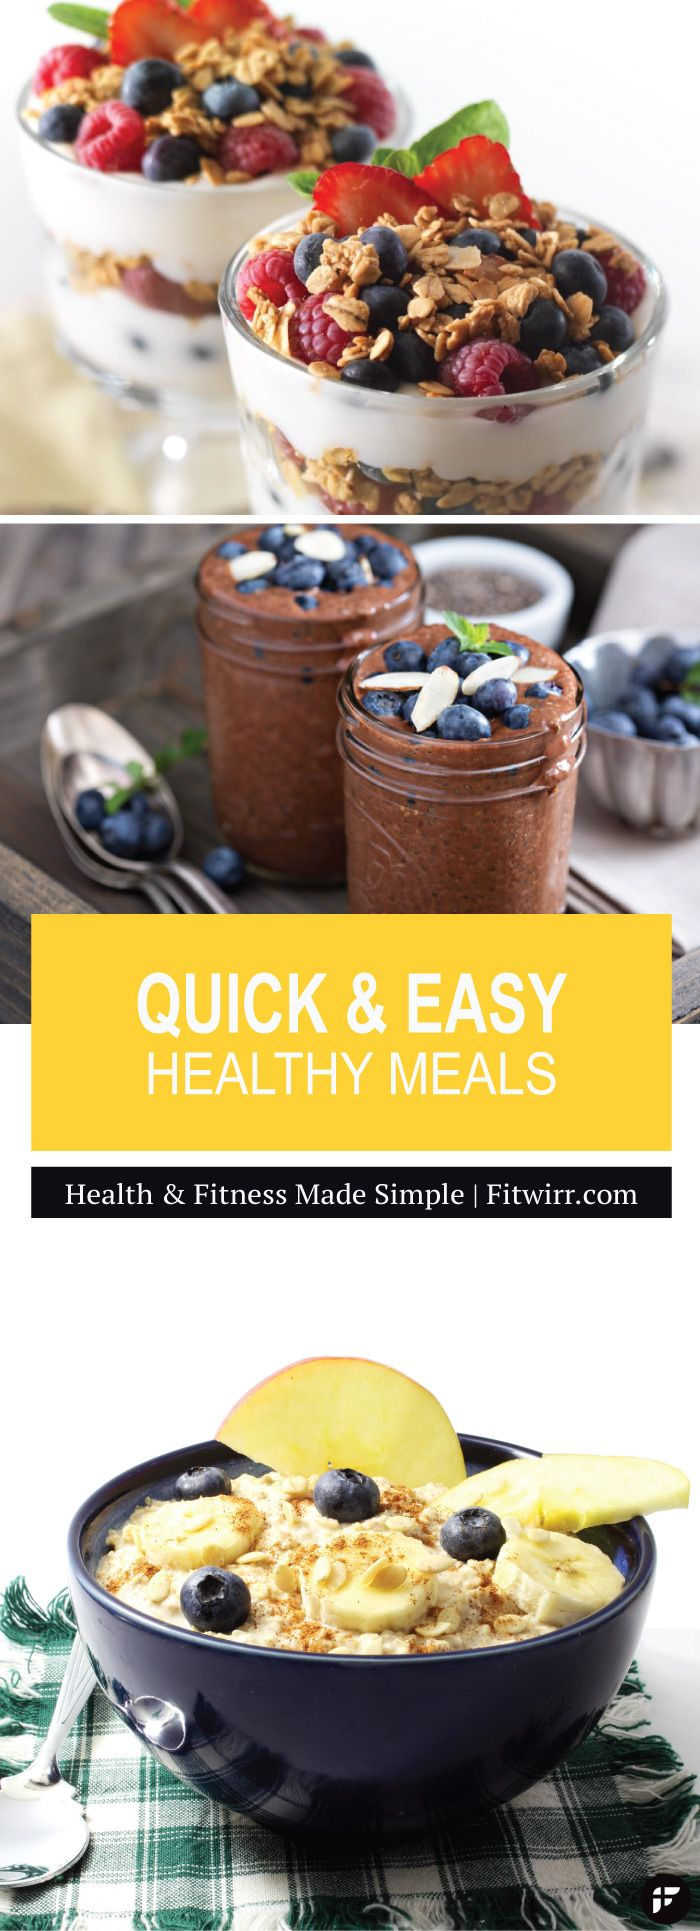 Quick and easy healthy meal ideas for cooking at home. #healthymeals